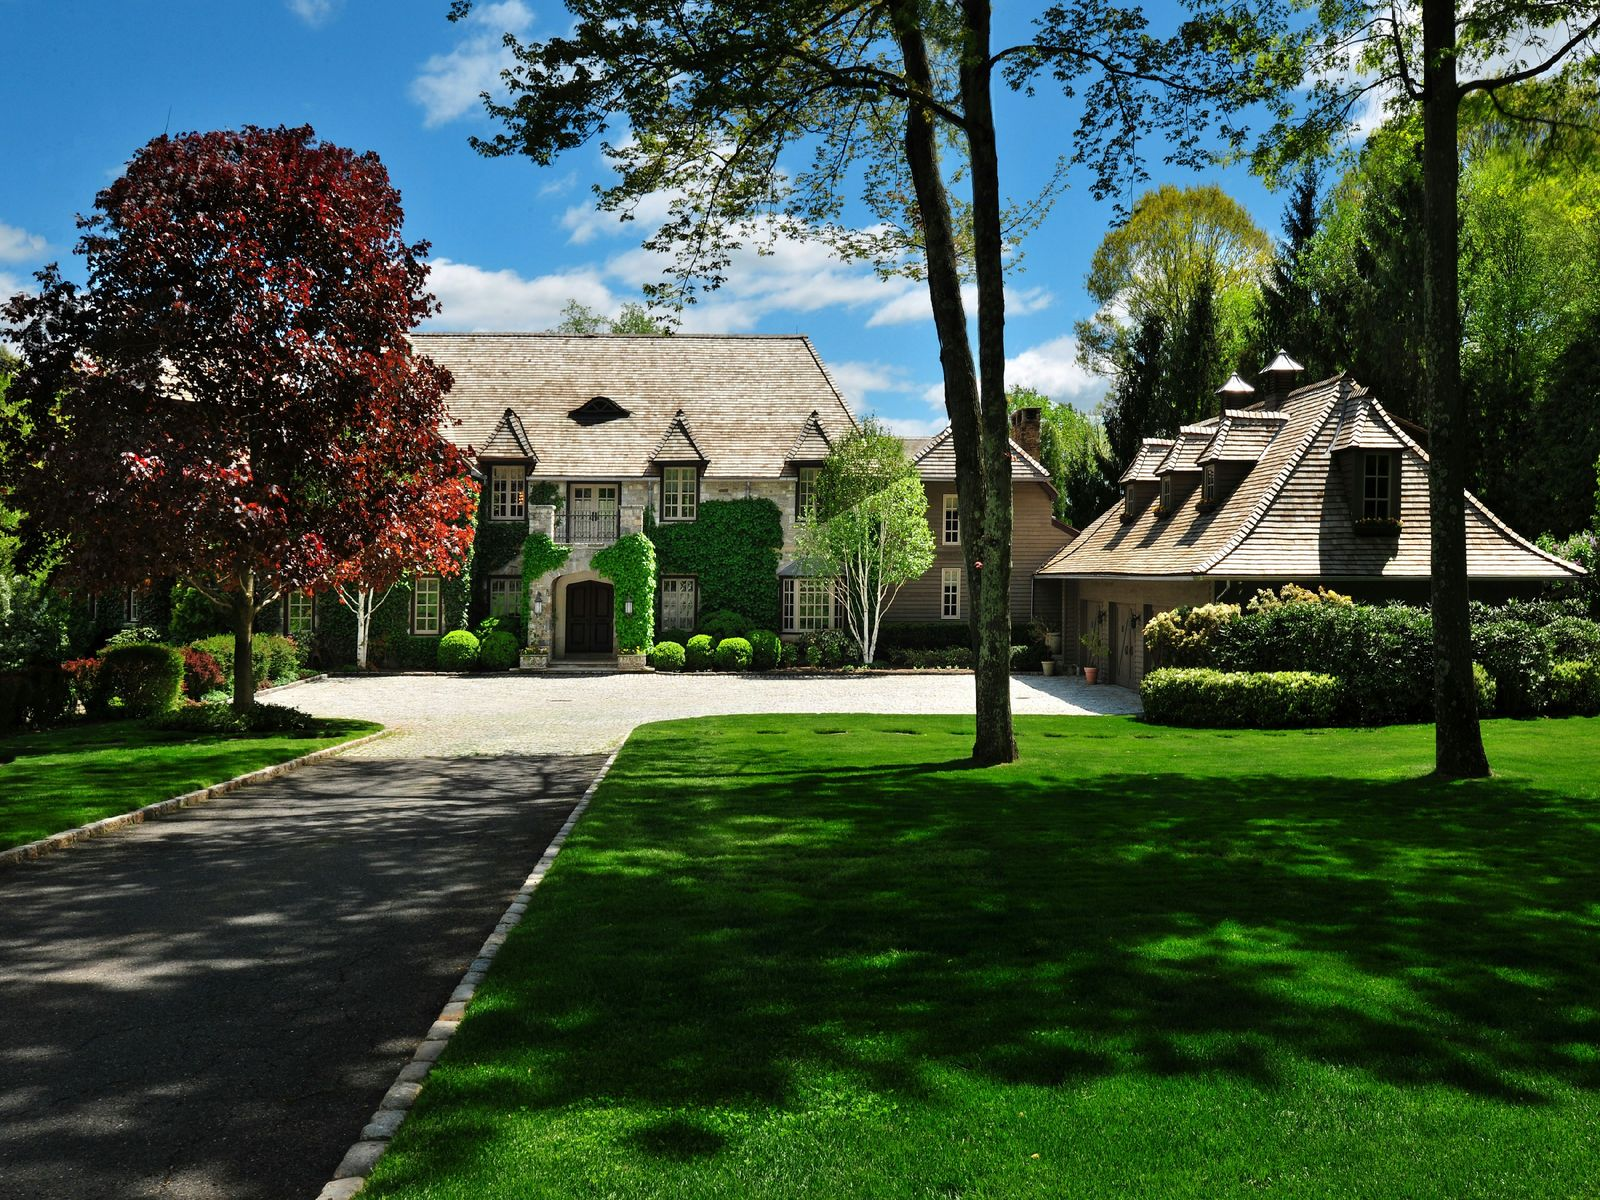 Conyers Farm Lakefront Estate, Greenwich CT Single Family Home - Greenwich Real Estate